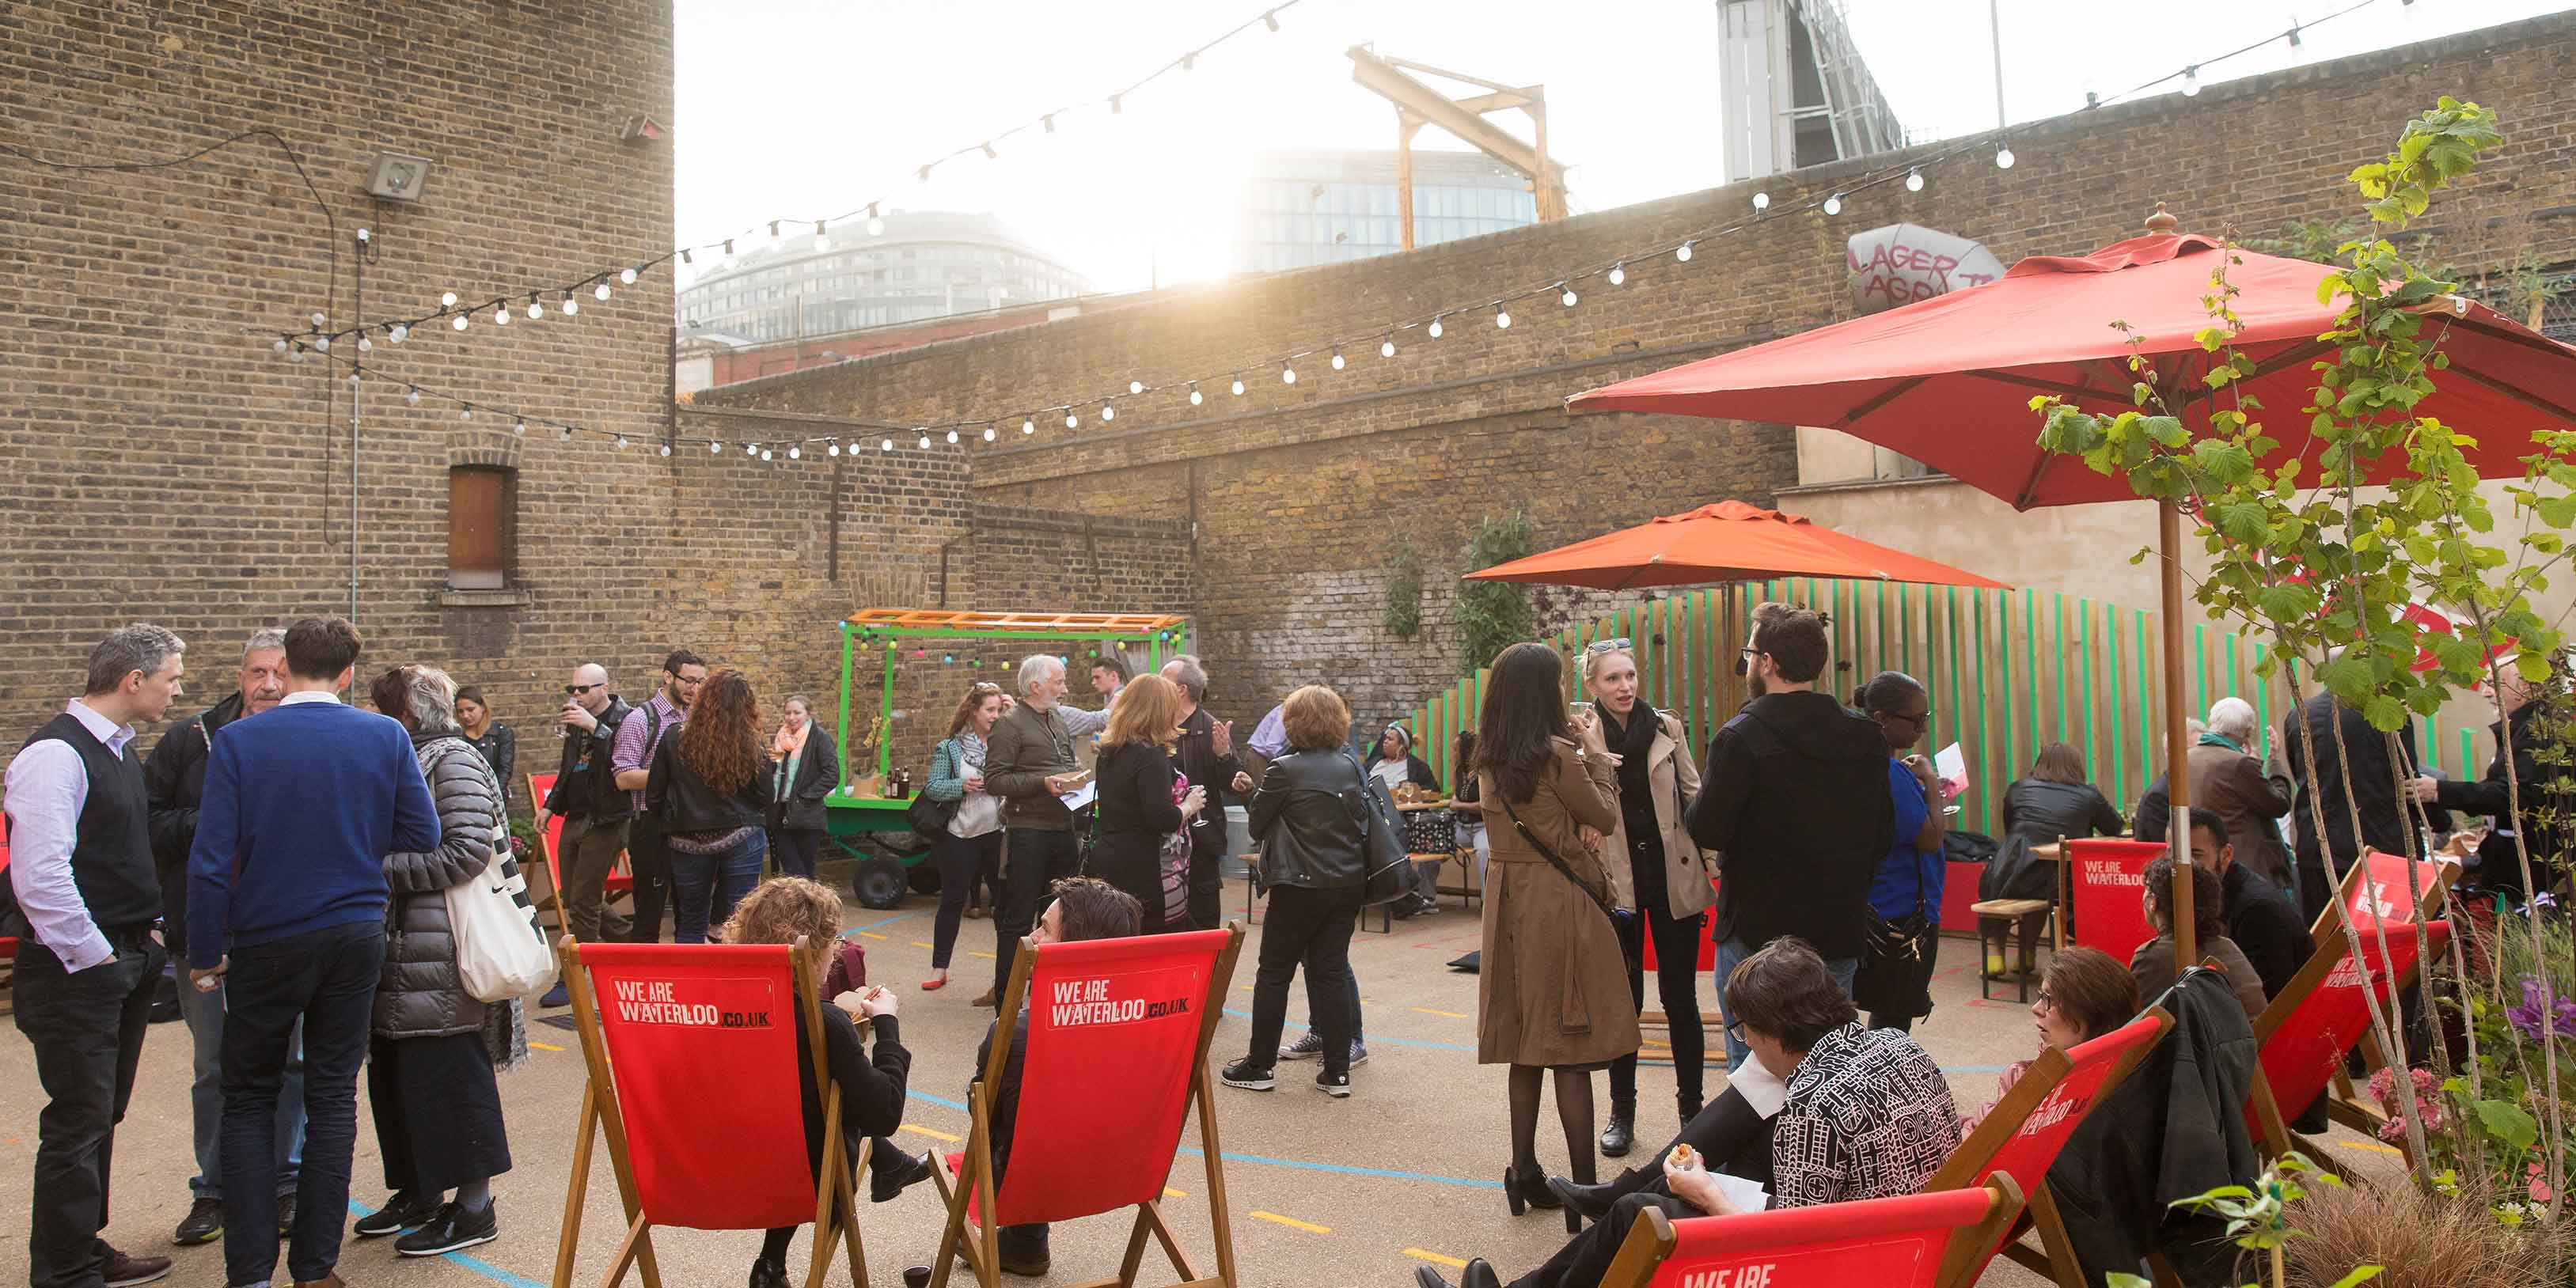 Granby Square '� A Clean Air Space Launched By Cleaner Air Better Business,  Anpleting Theplete